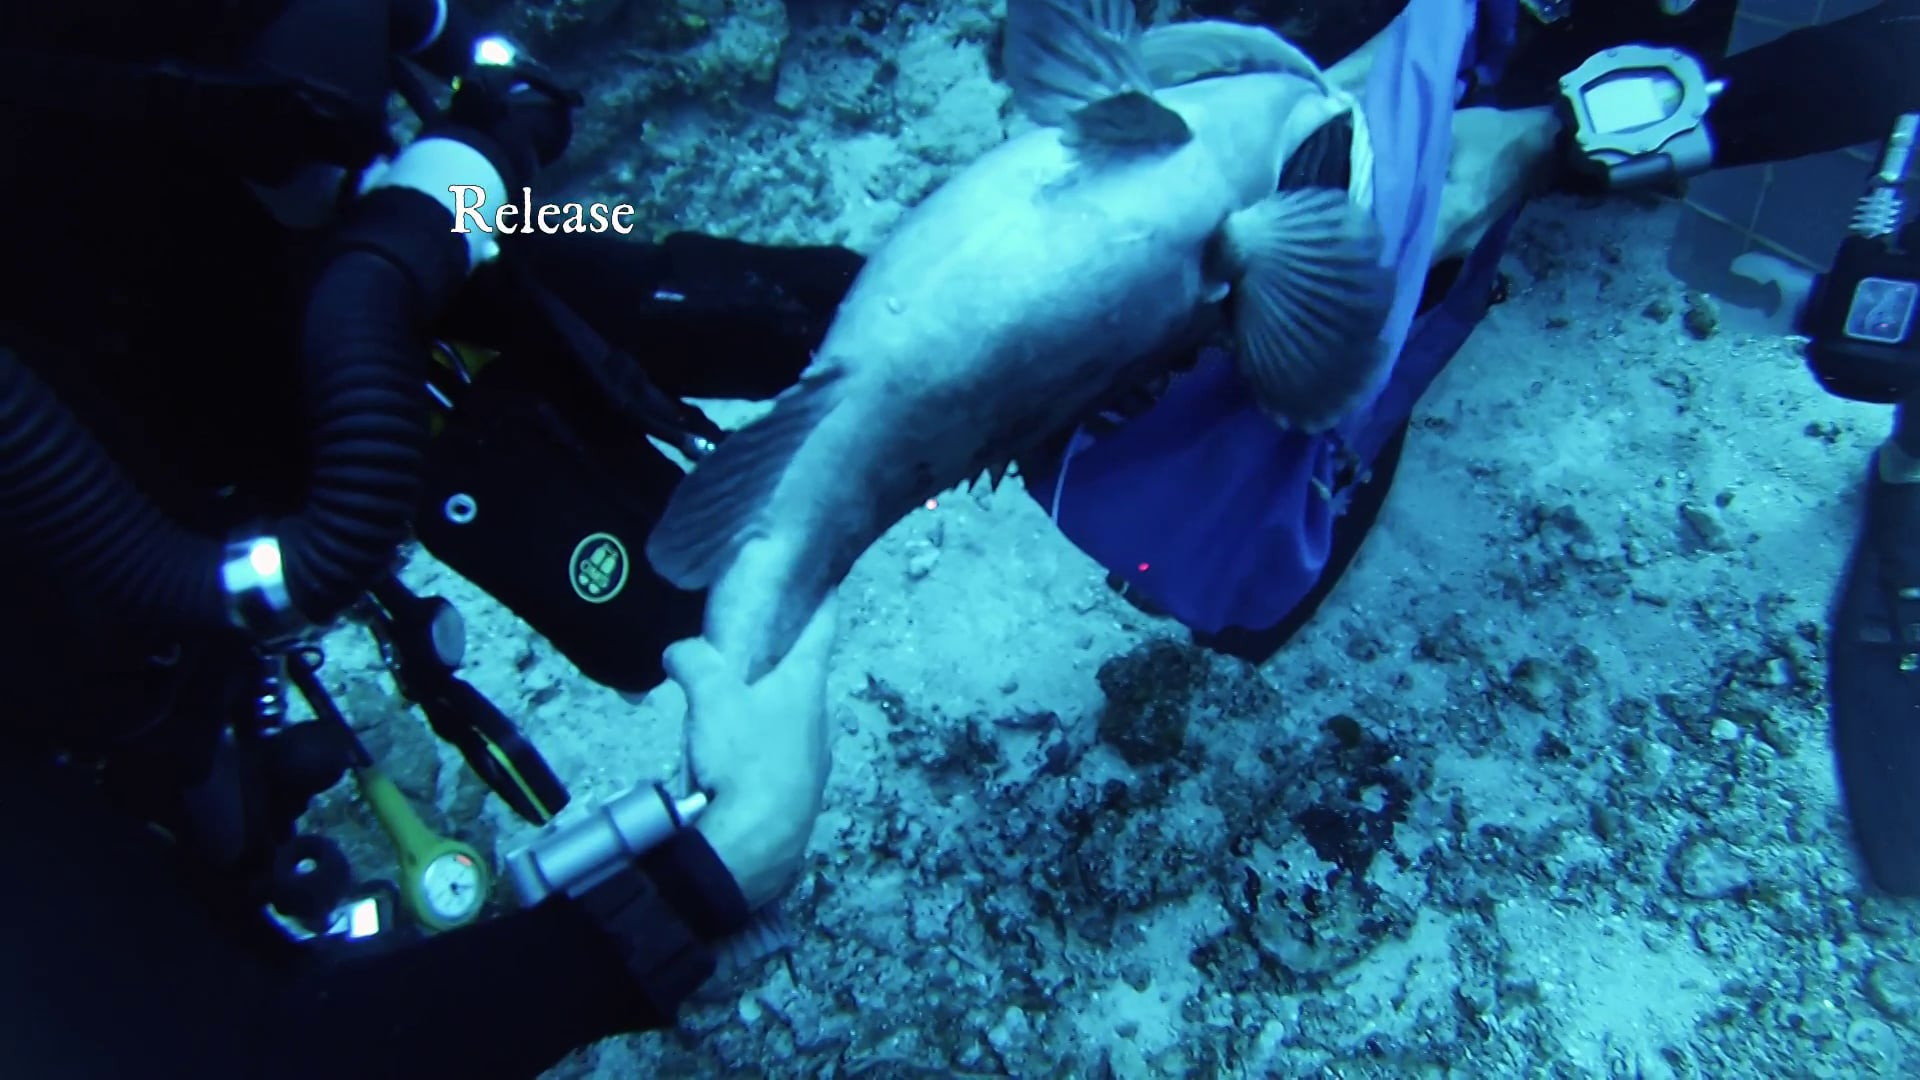 In-situ acoustic tagging using closed-circuit rebreathers in Puerto Rico